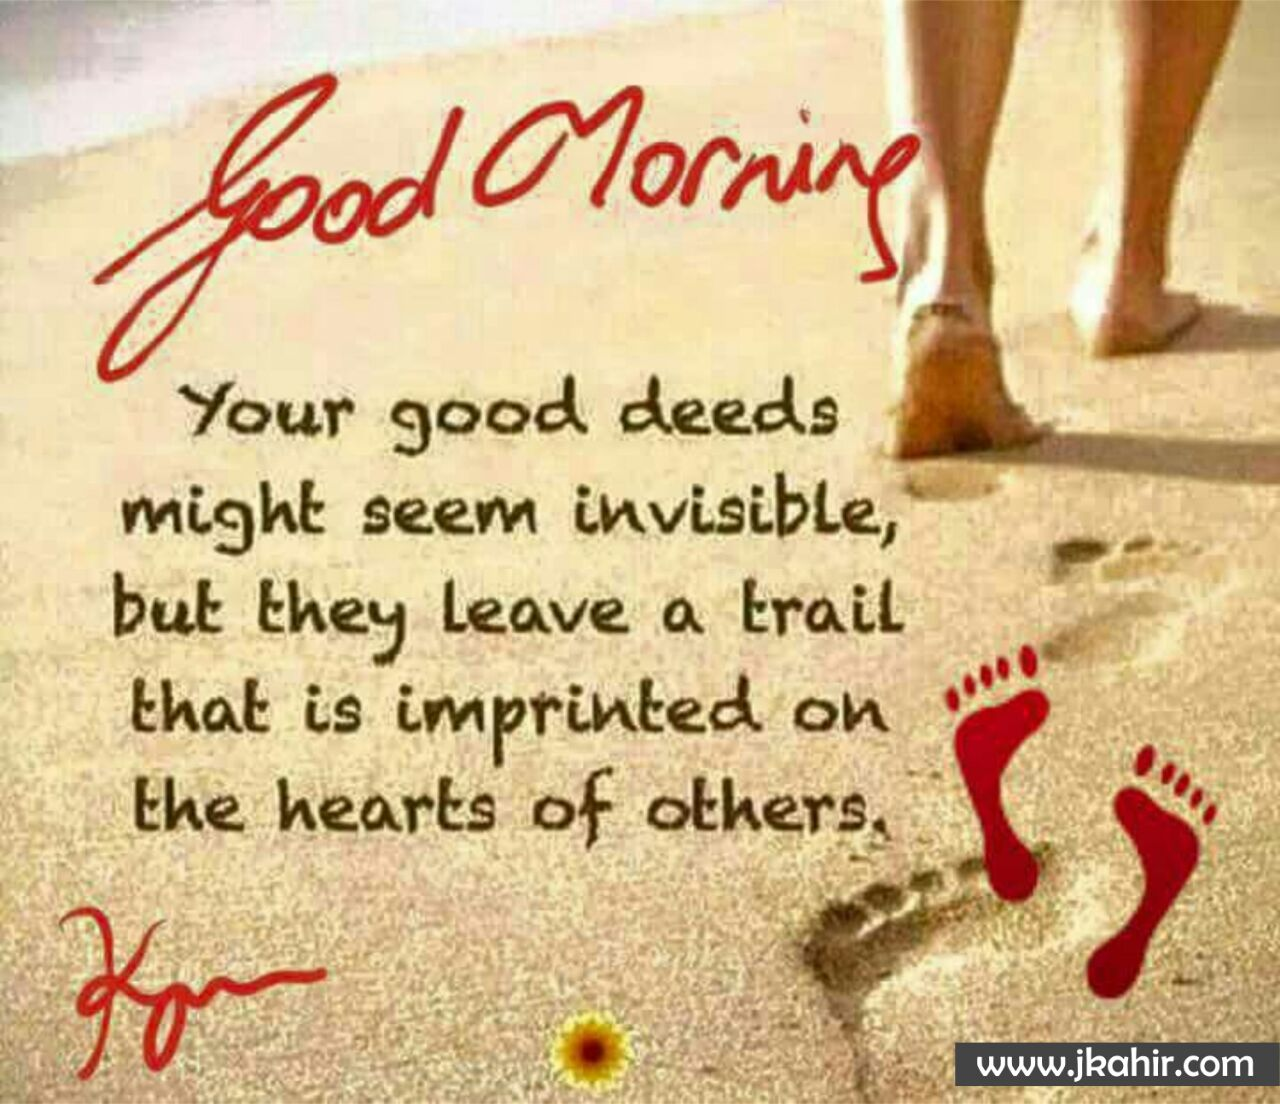 You Good Deeds Might Seem Invisible